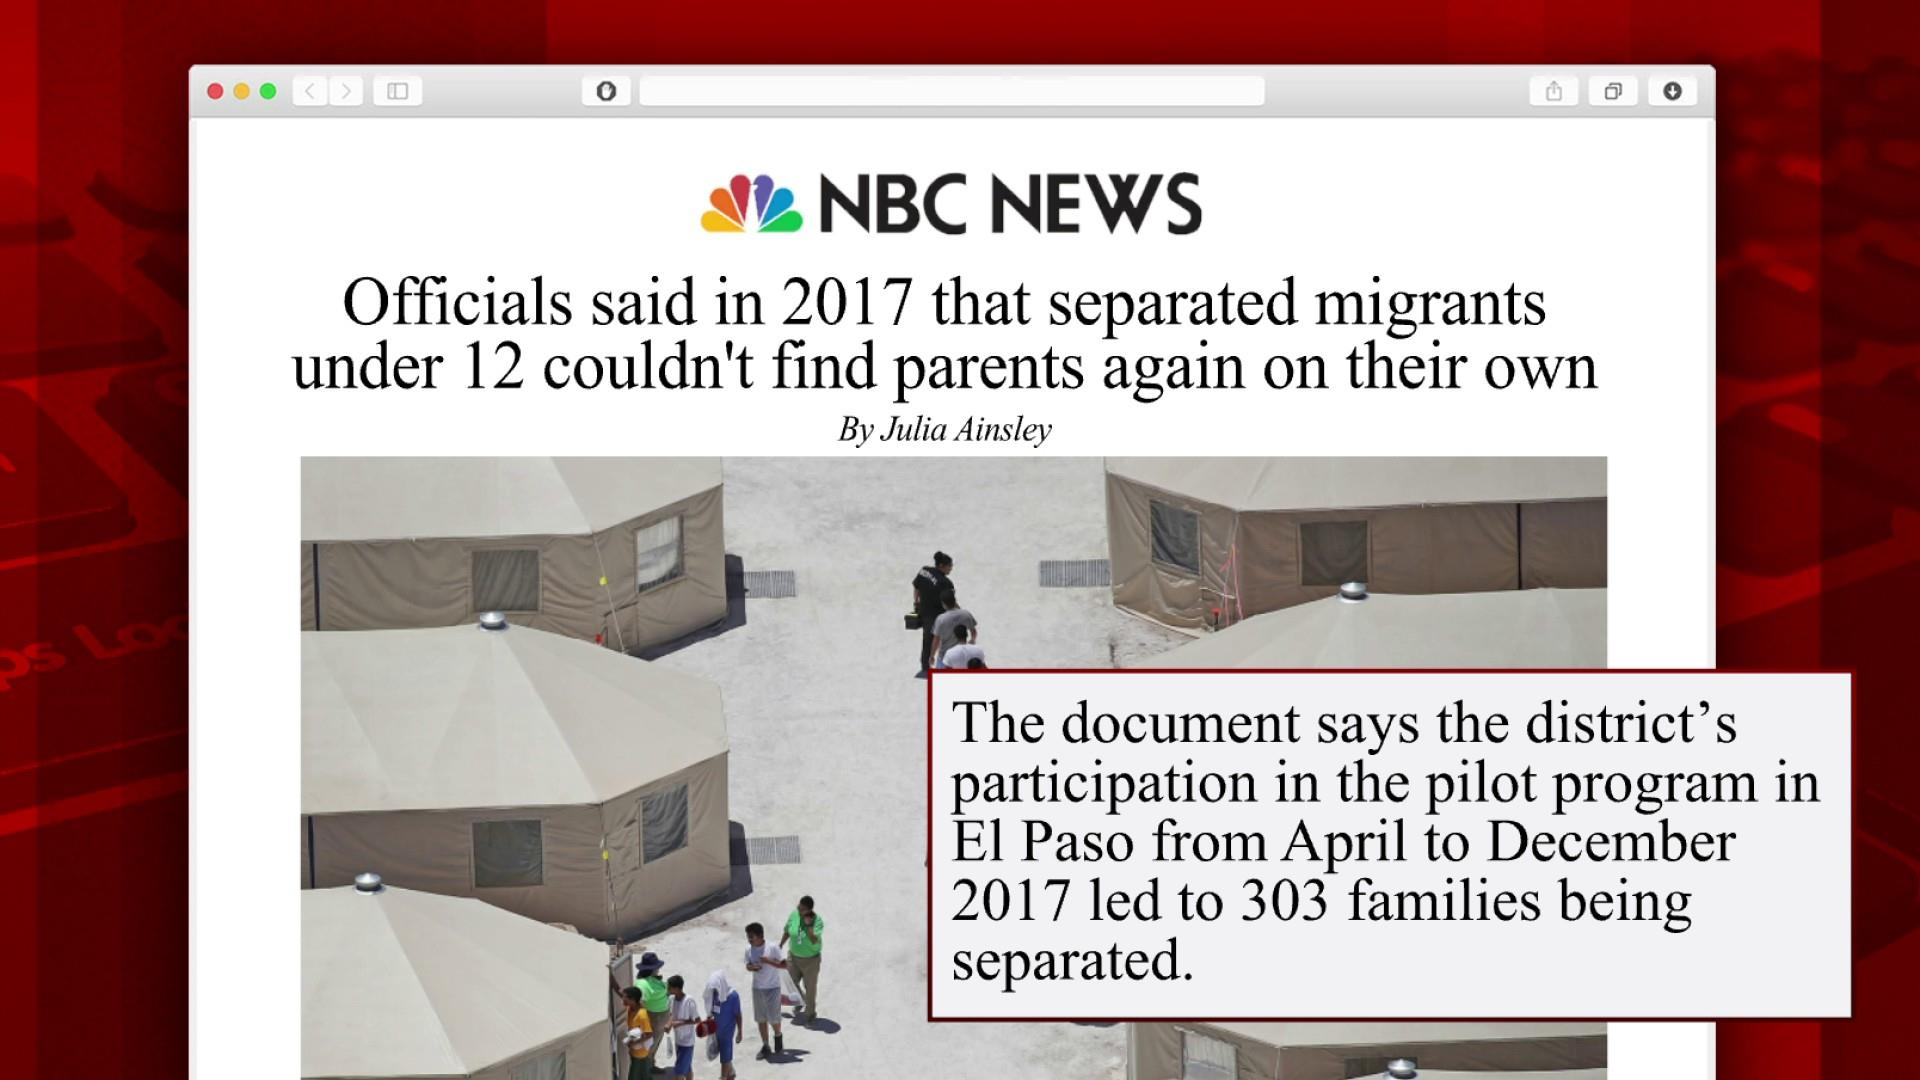 Cameroonian Asylum Seekers Pulled Off Deportation Plane Amid Allegations Of Ice Abuse